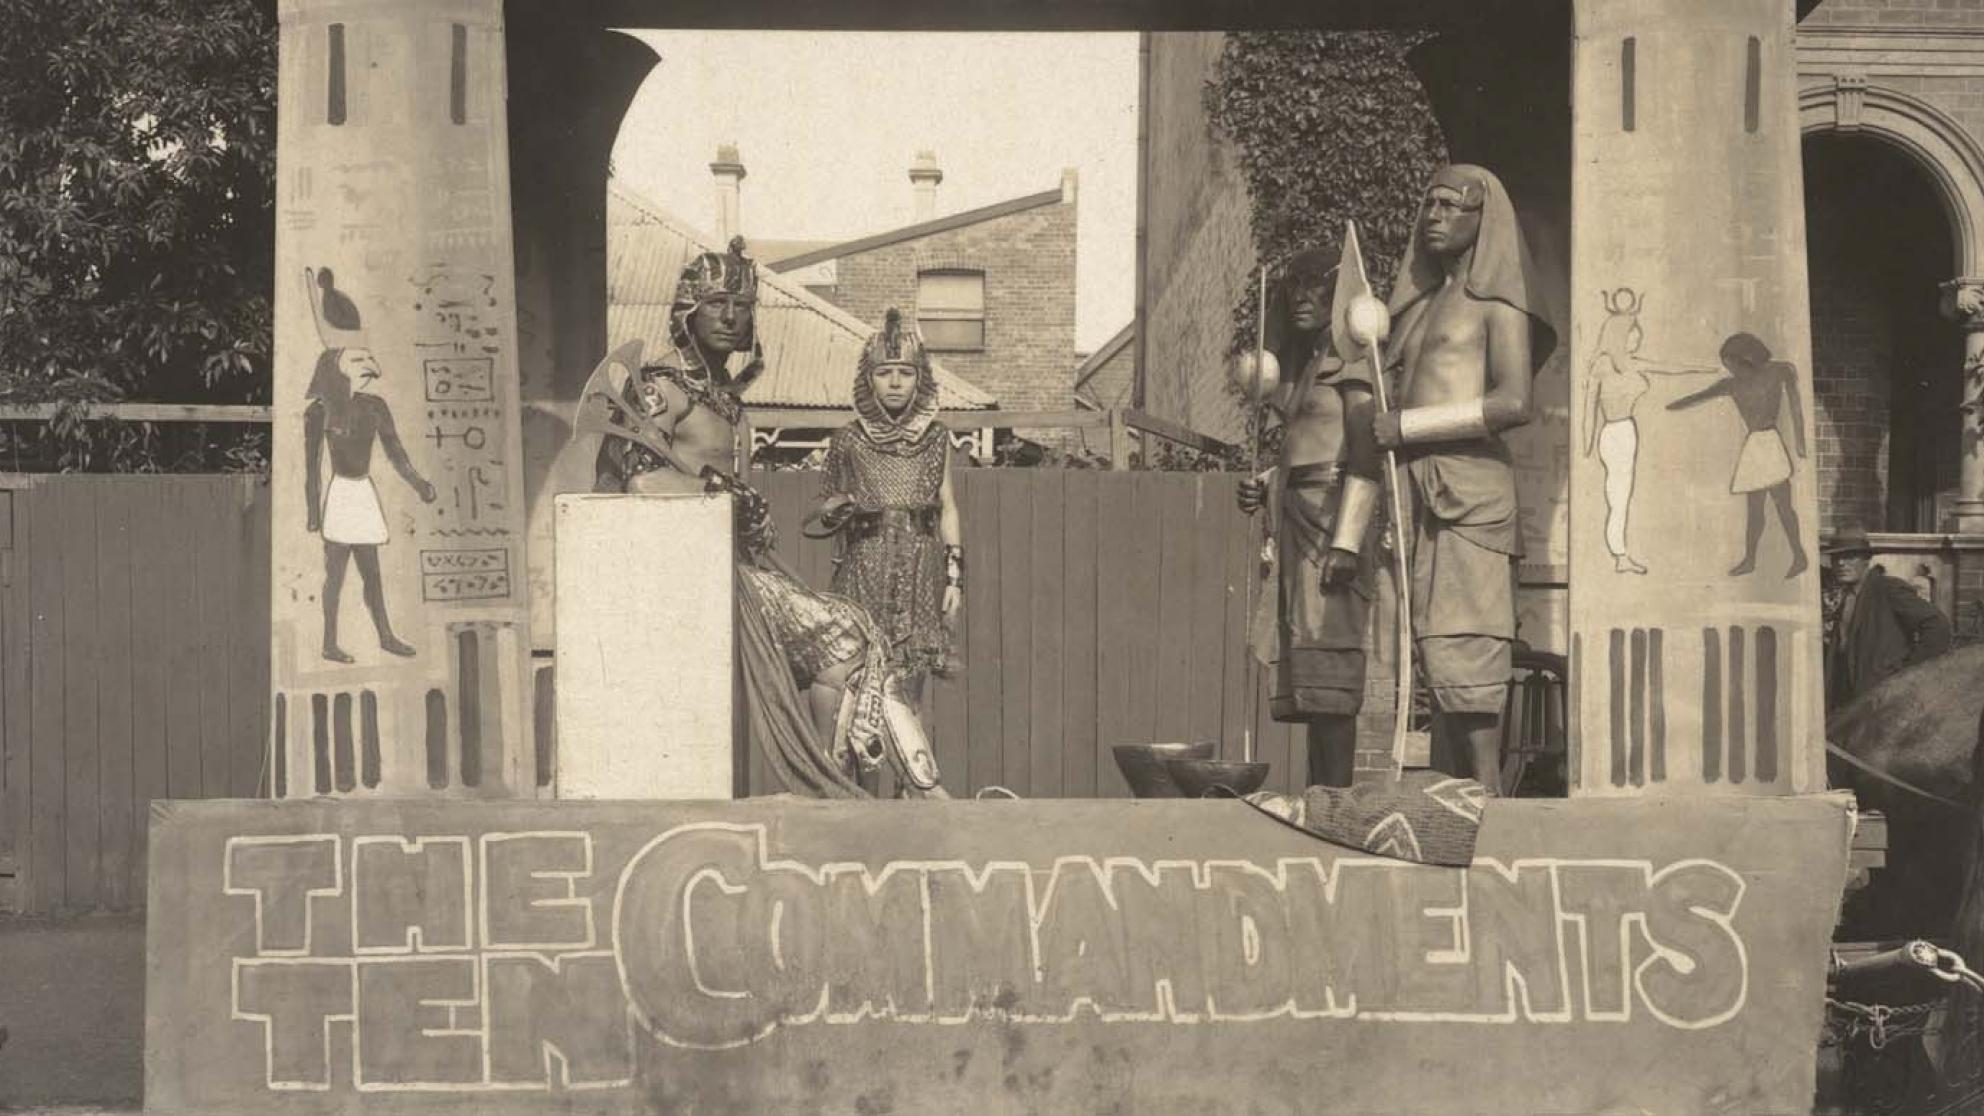 Four actors in costume pose on a horse-drawn trailer promoting The Ten Commandments in 1925